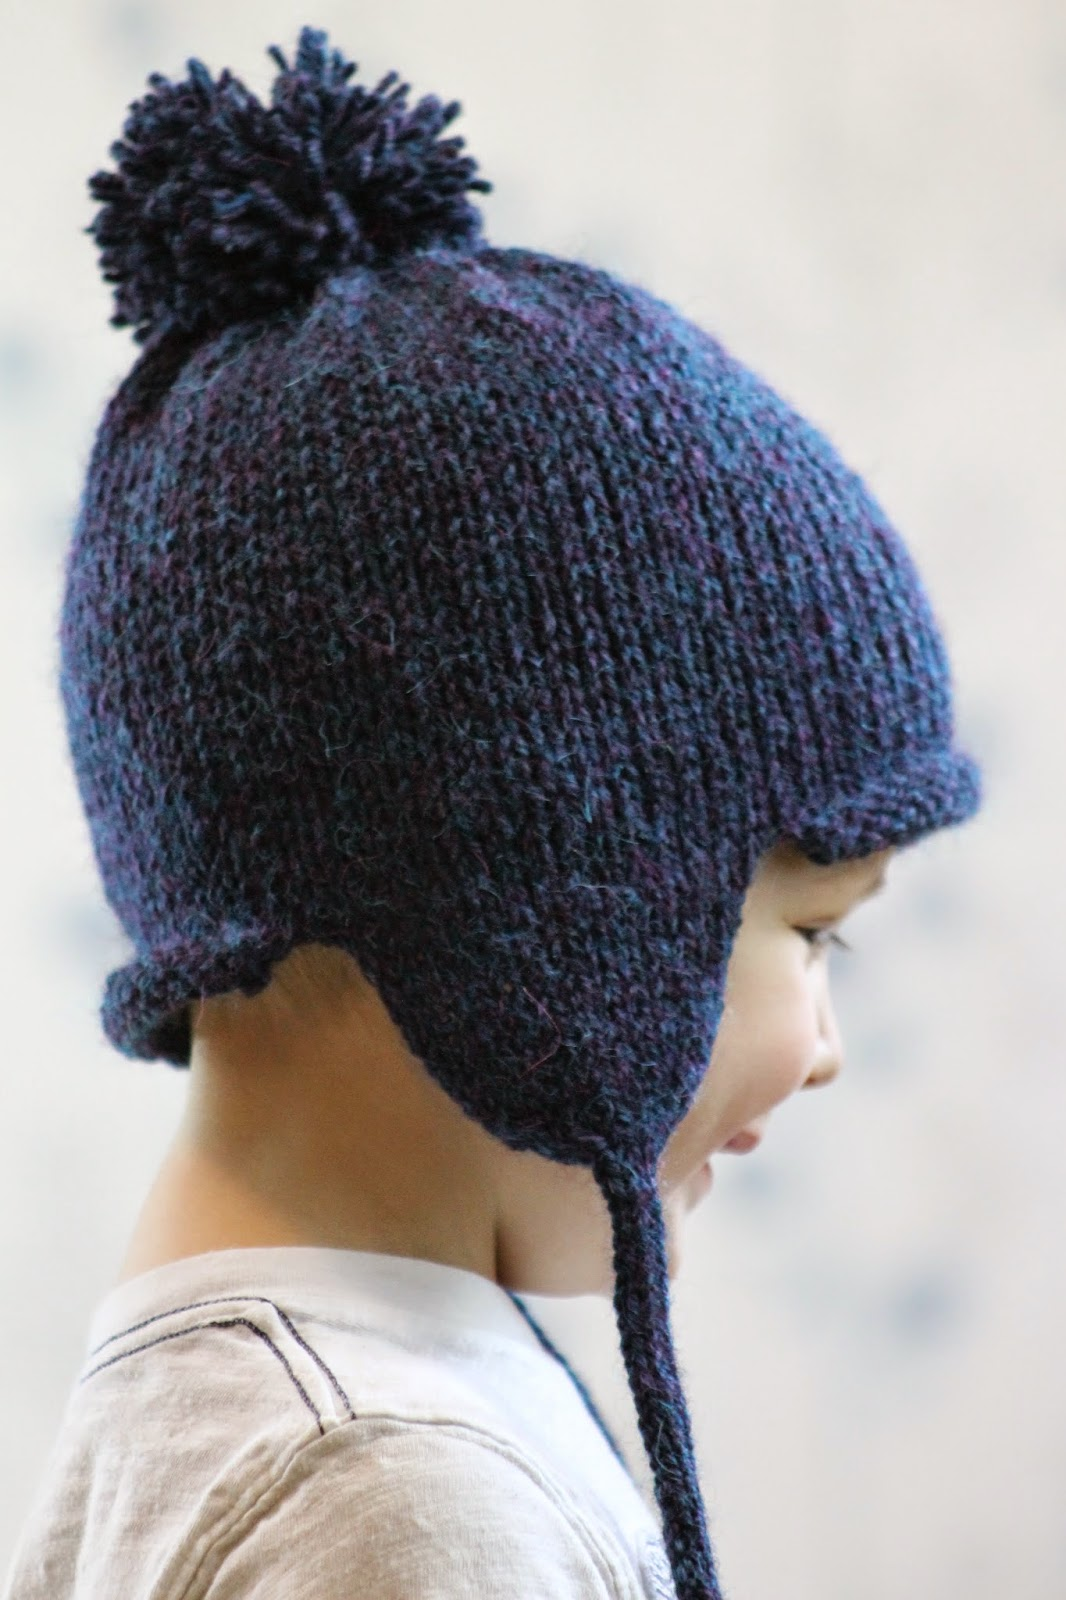 Hats and Beanies - 24software.mle Shipping Over $35· 10% Back in Rewards· Price match· Lifetime returns.